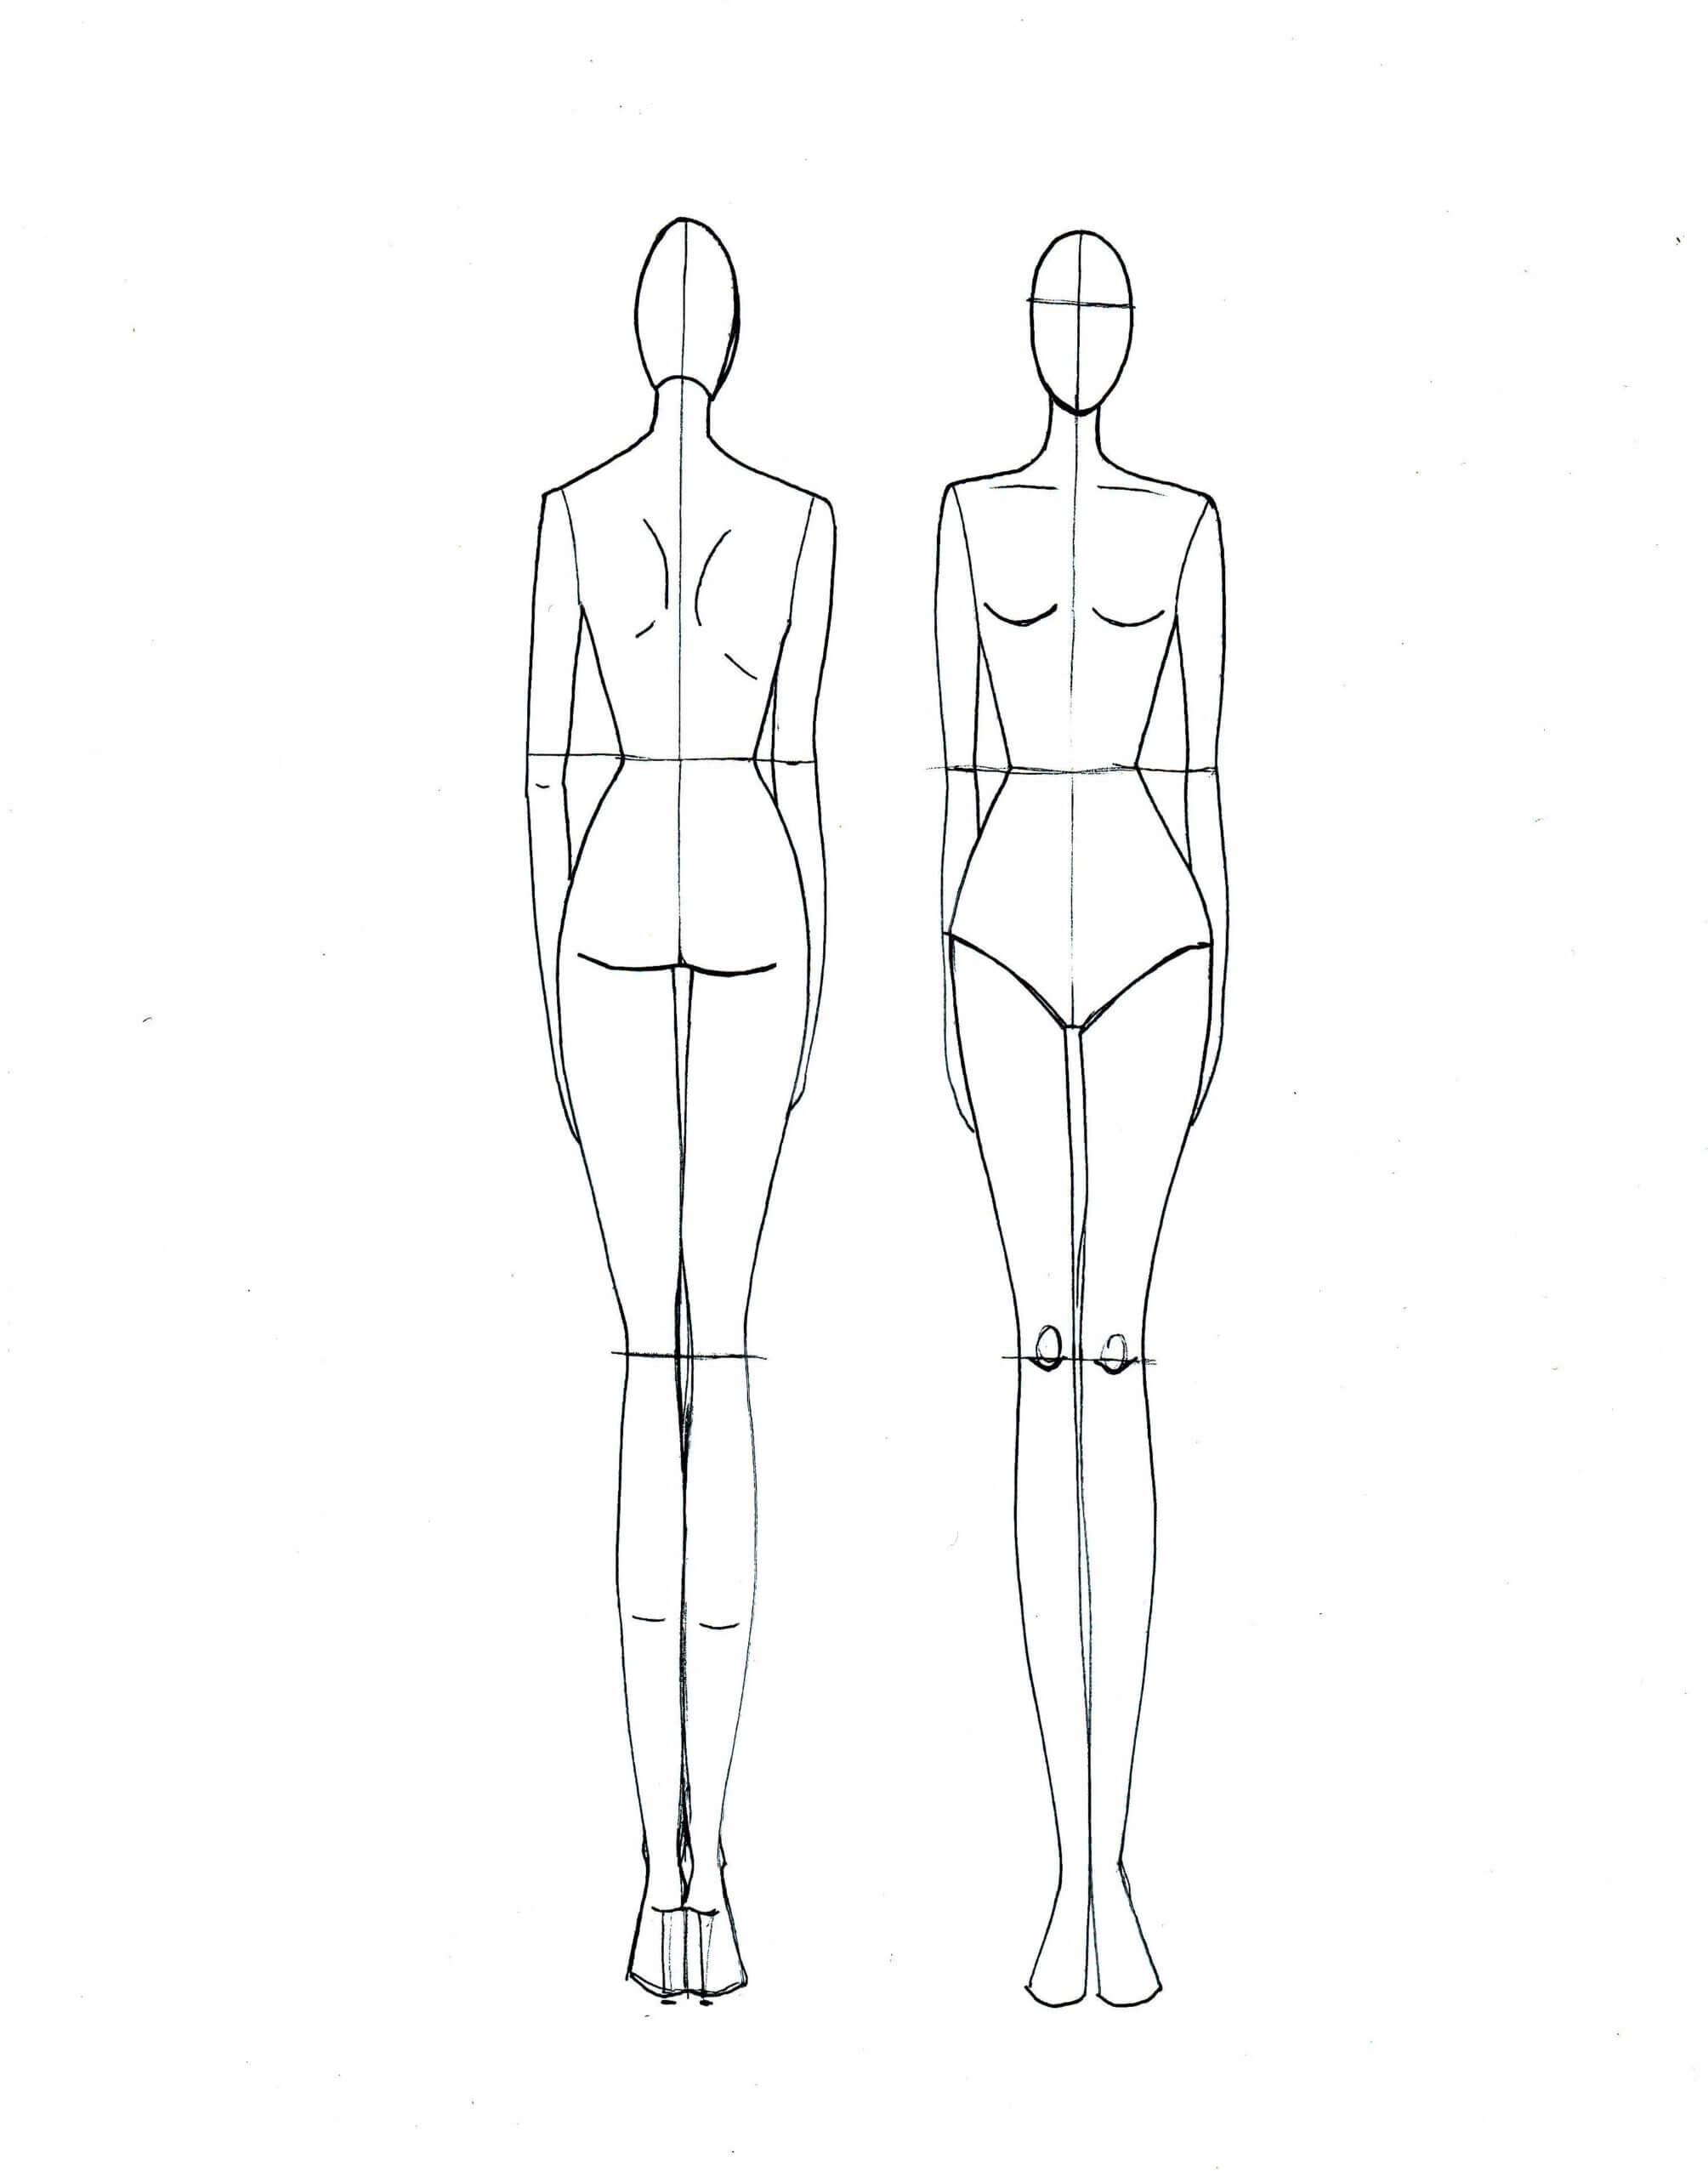 Clothing Model Sketch At Paintingvalley | Explore With Regard To Blank Model Sketch Template